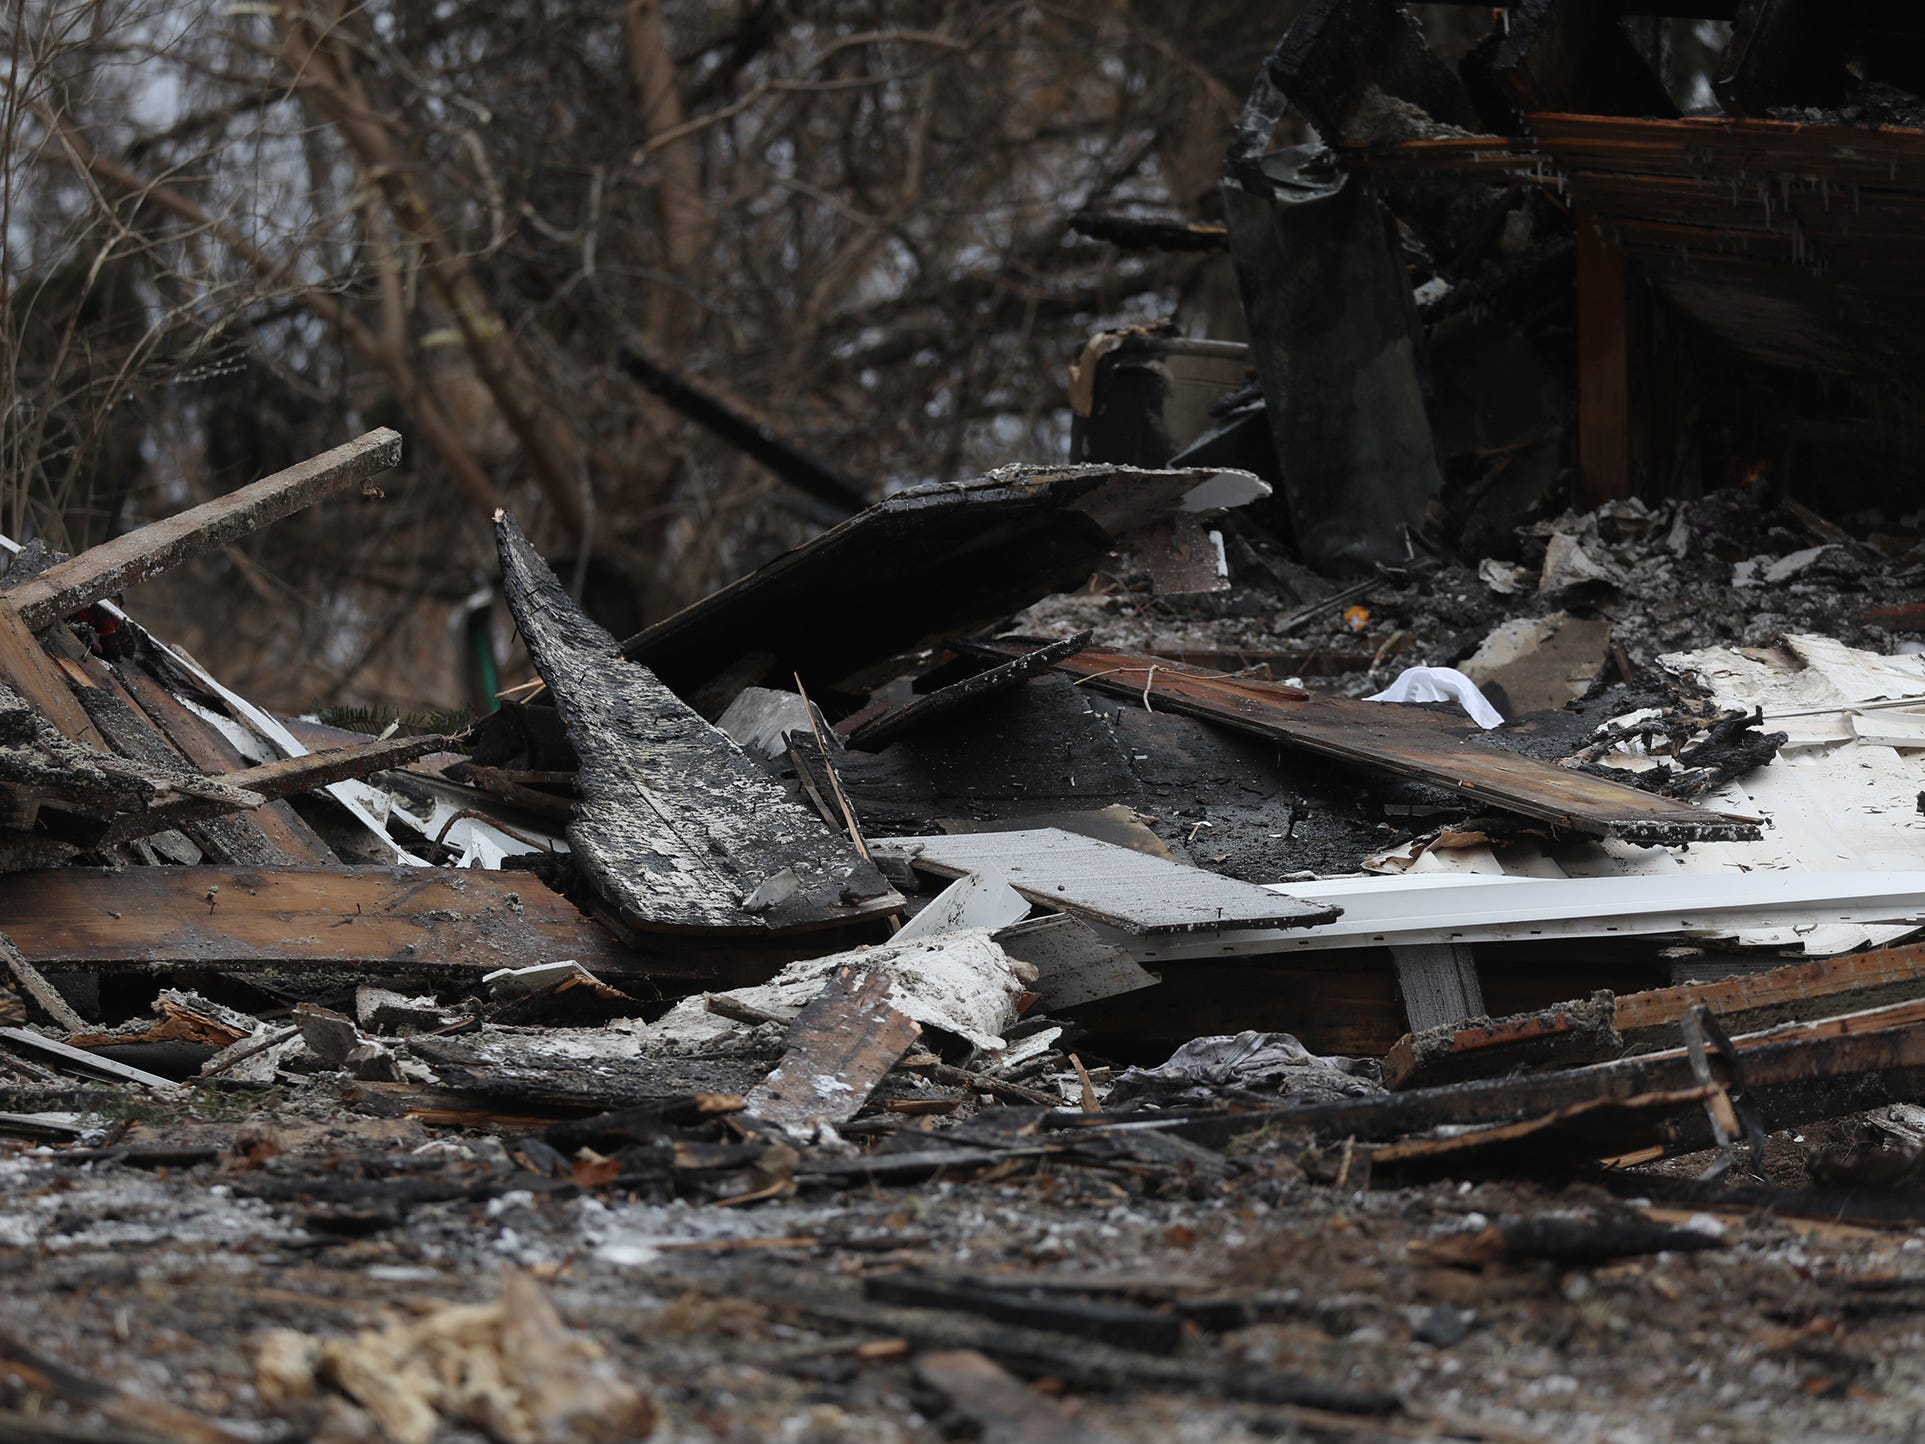 """Fire Chief Peter Smith of the Hamlin Morton Walker Fire District called it a """"wind-driven fire.""""  He said winds were probably around 50 mph during the time of the fire. The house is near open fields."""